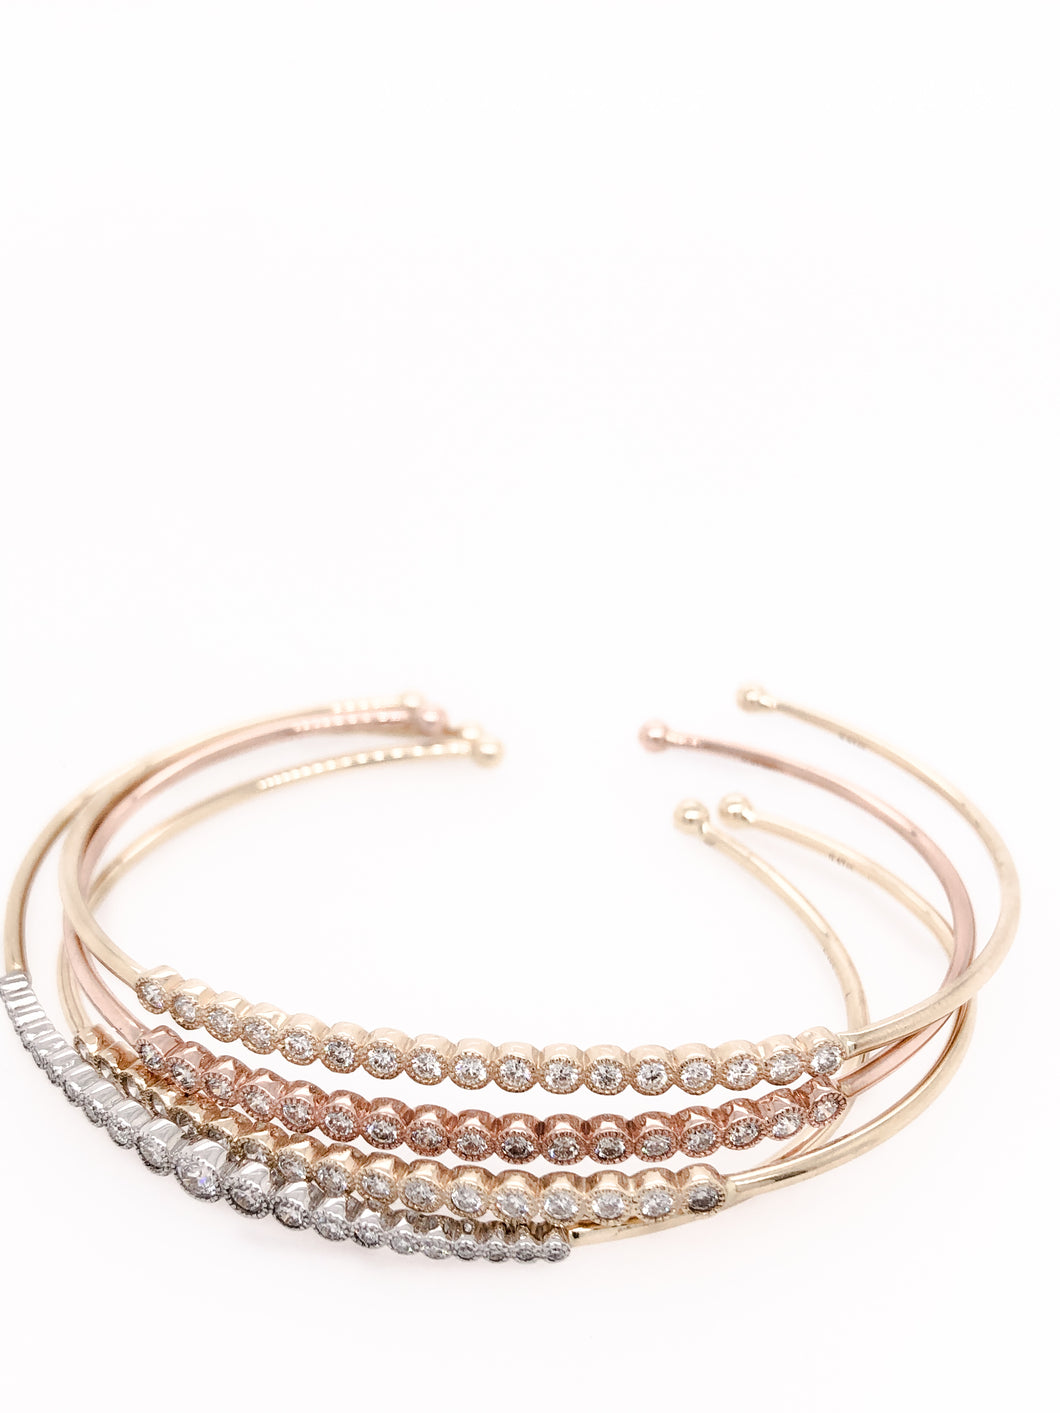 Lab Diamond Bangle Bracelets